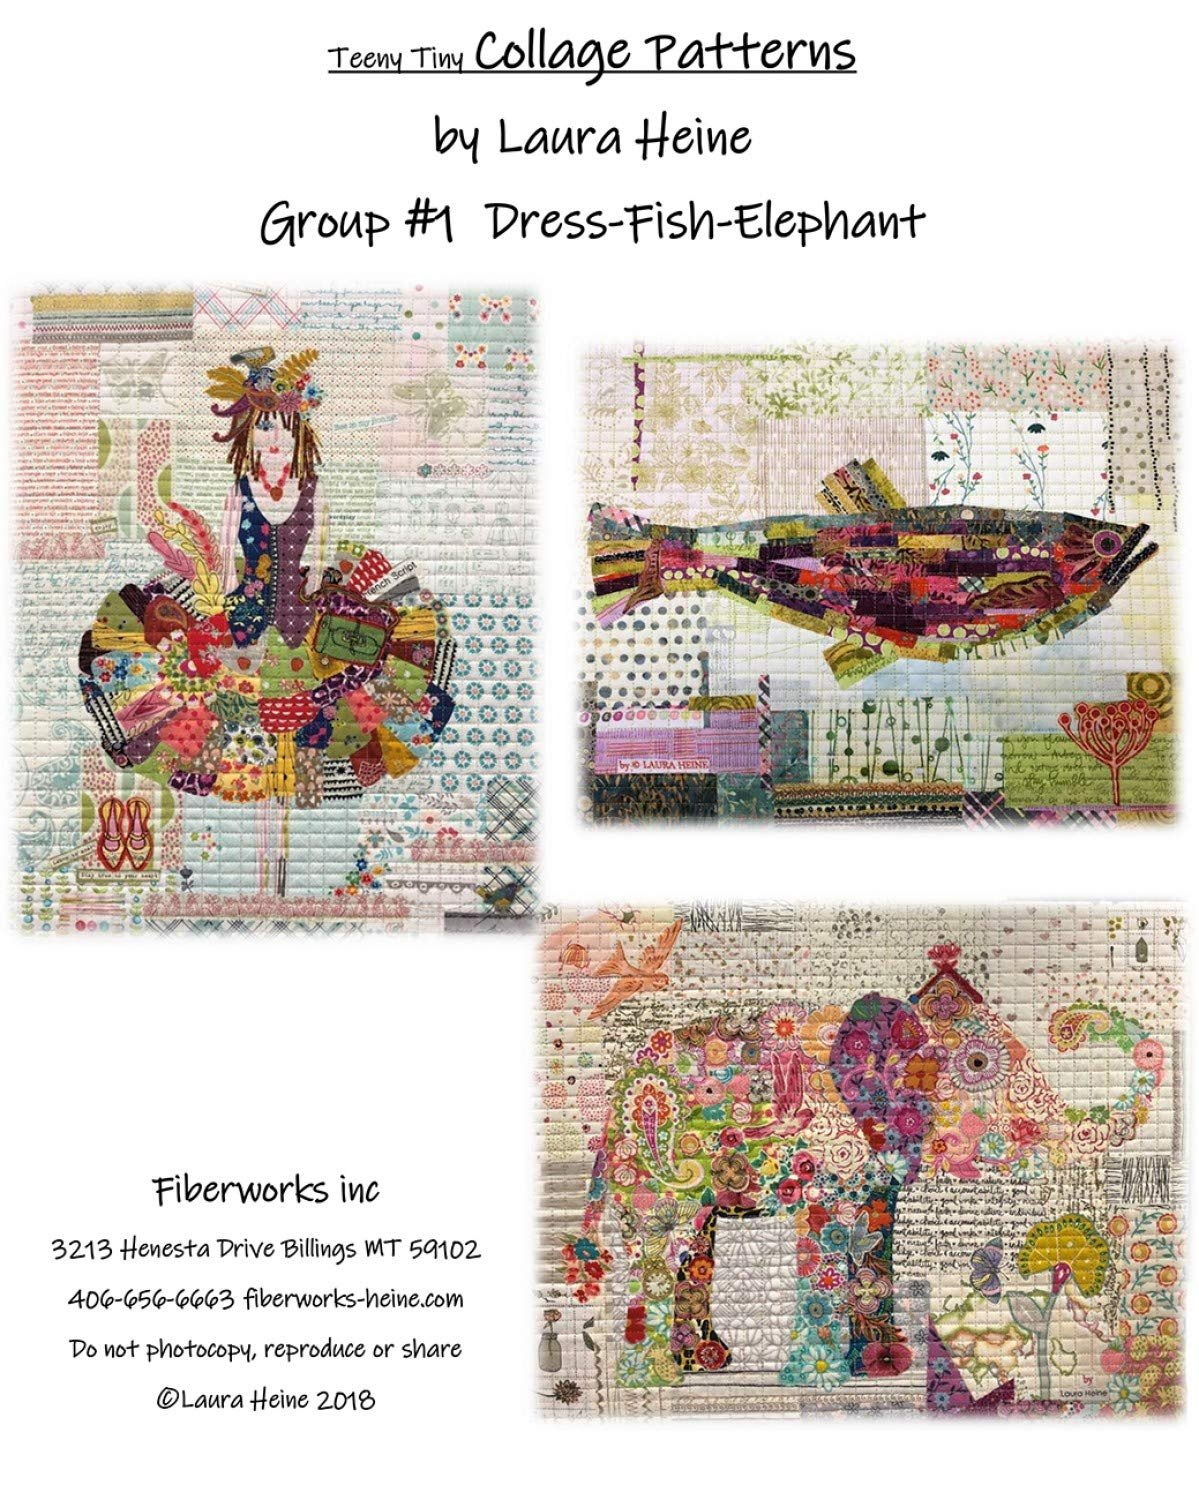 TEENY TINY COLLAGE PATTERNS GROUP 1 - LAURA HEINE